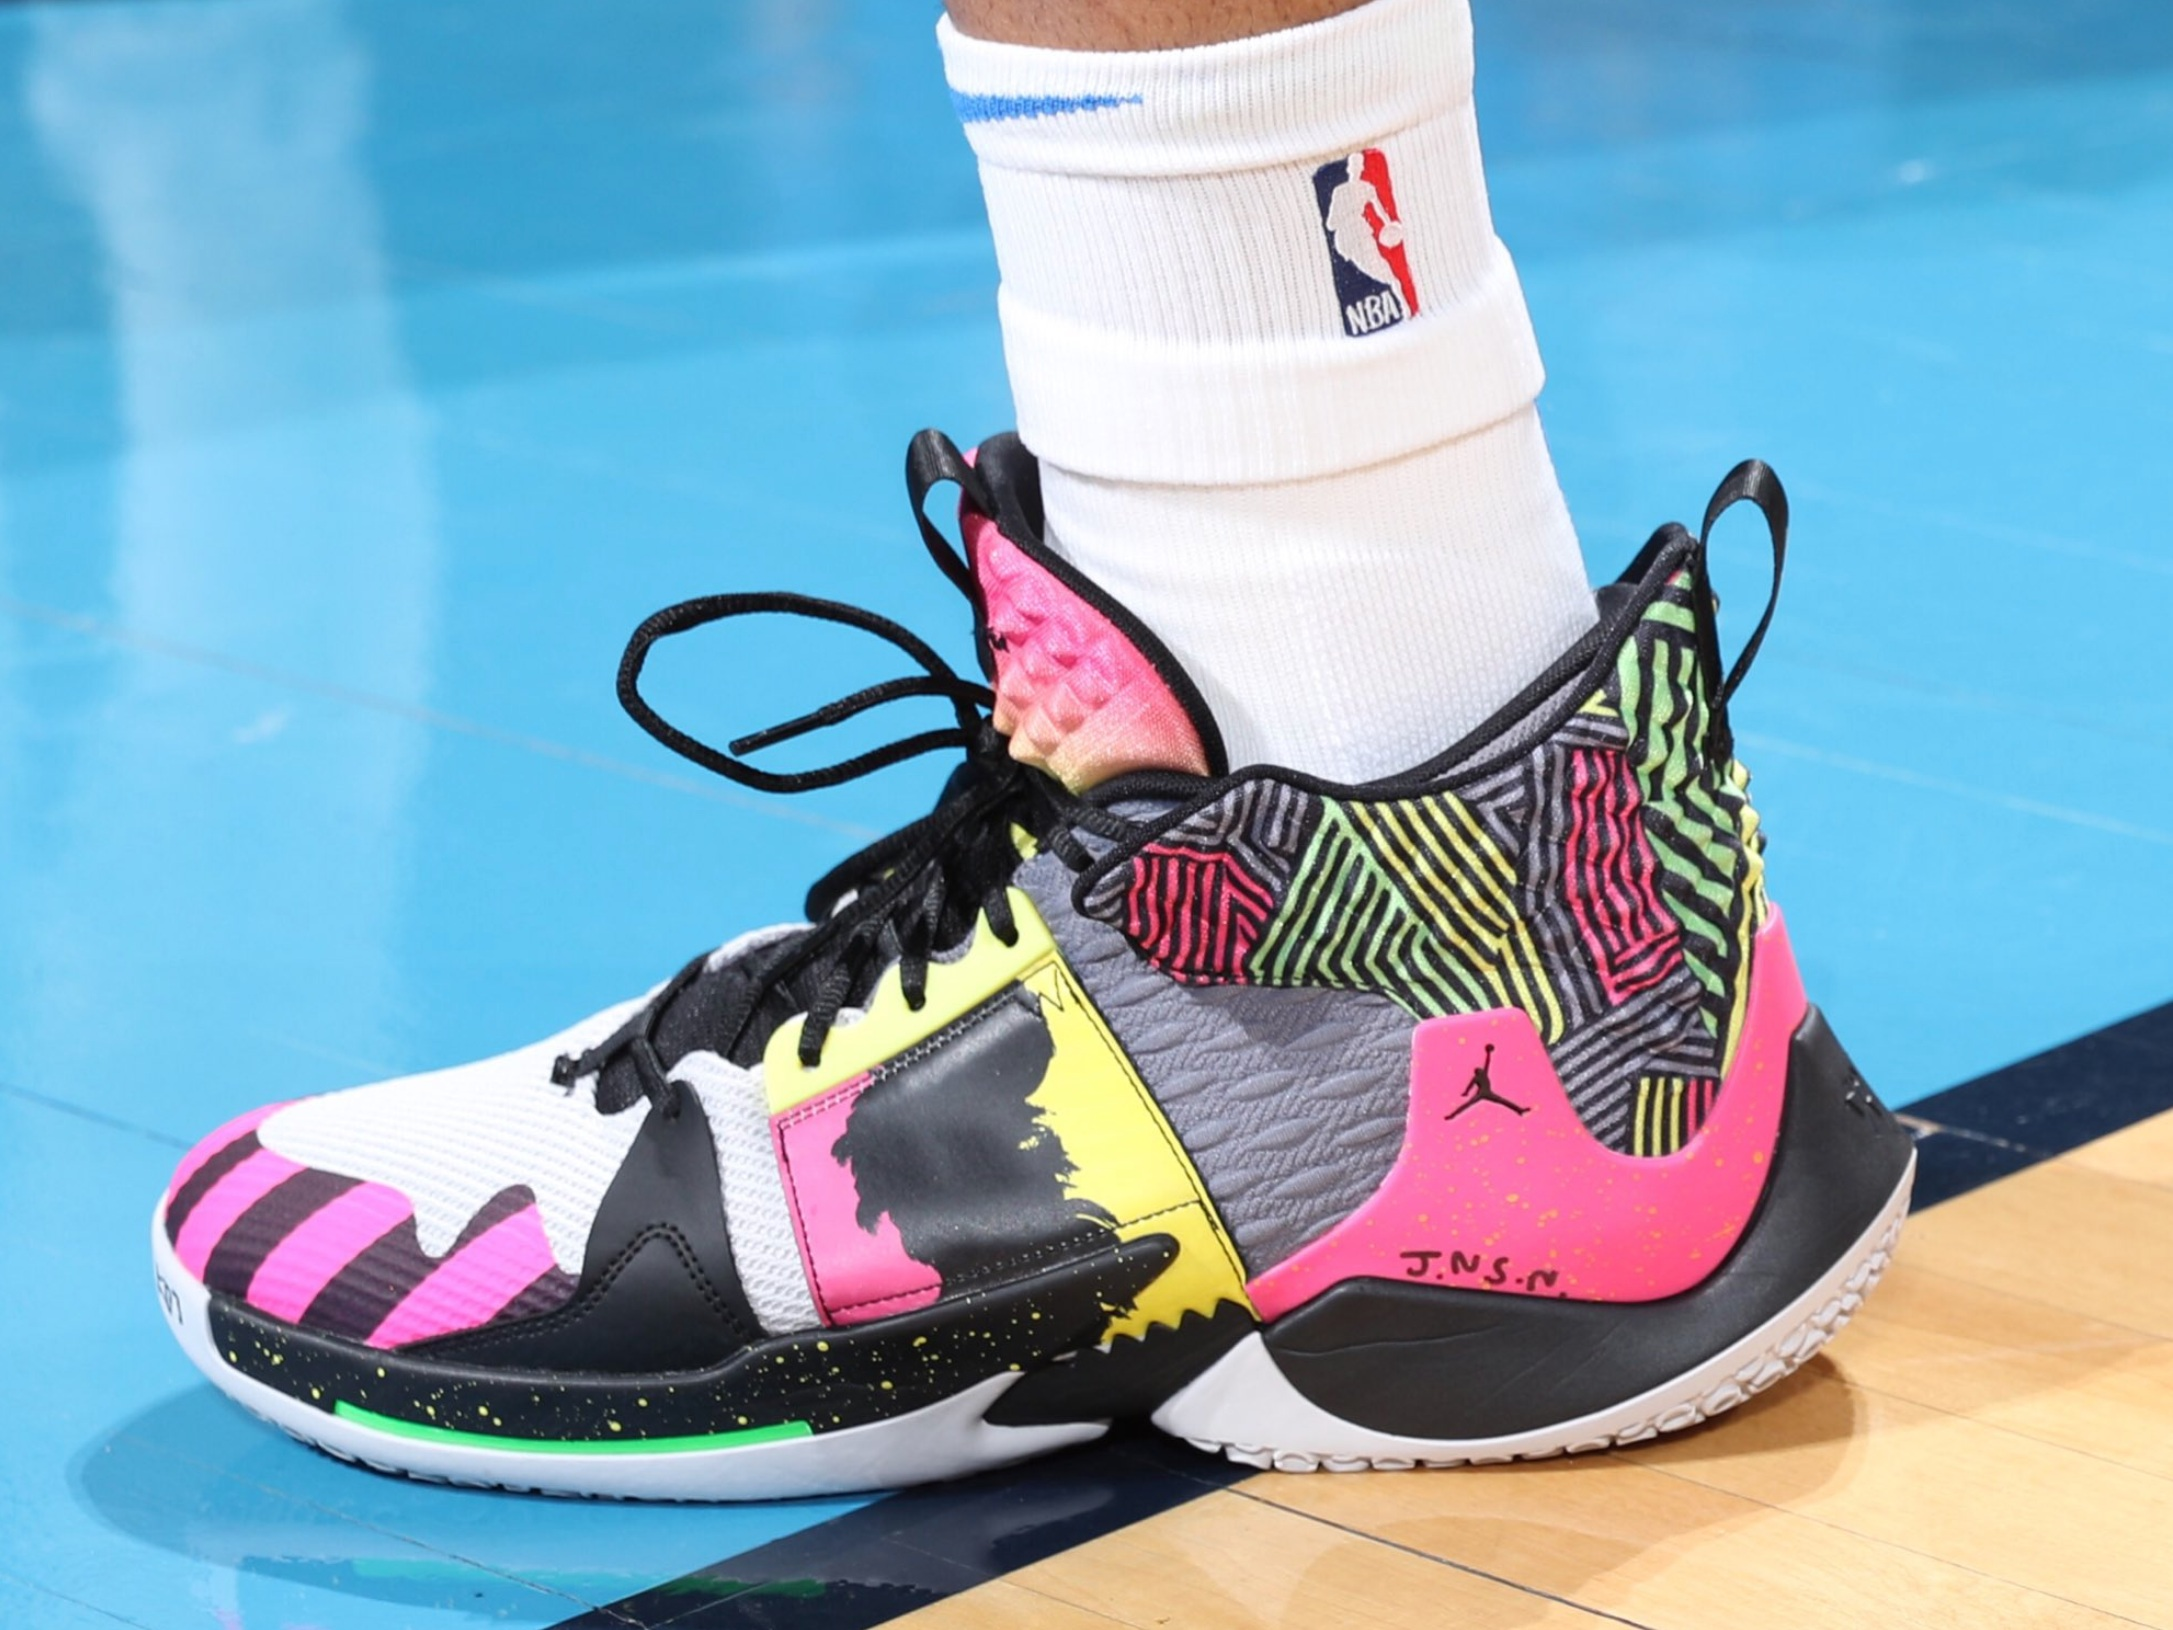 Russell Westbrook again with the custom Jordan Why Not? Zer0.2 - Oklahoma City Thunder vs. Detroit Pistons | April 5, 201919 Points15 Assists8 Rebounds1 Steal6-18 Shooting